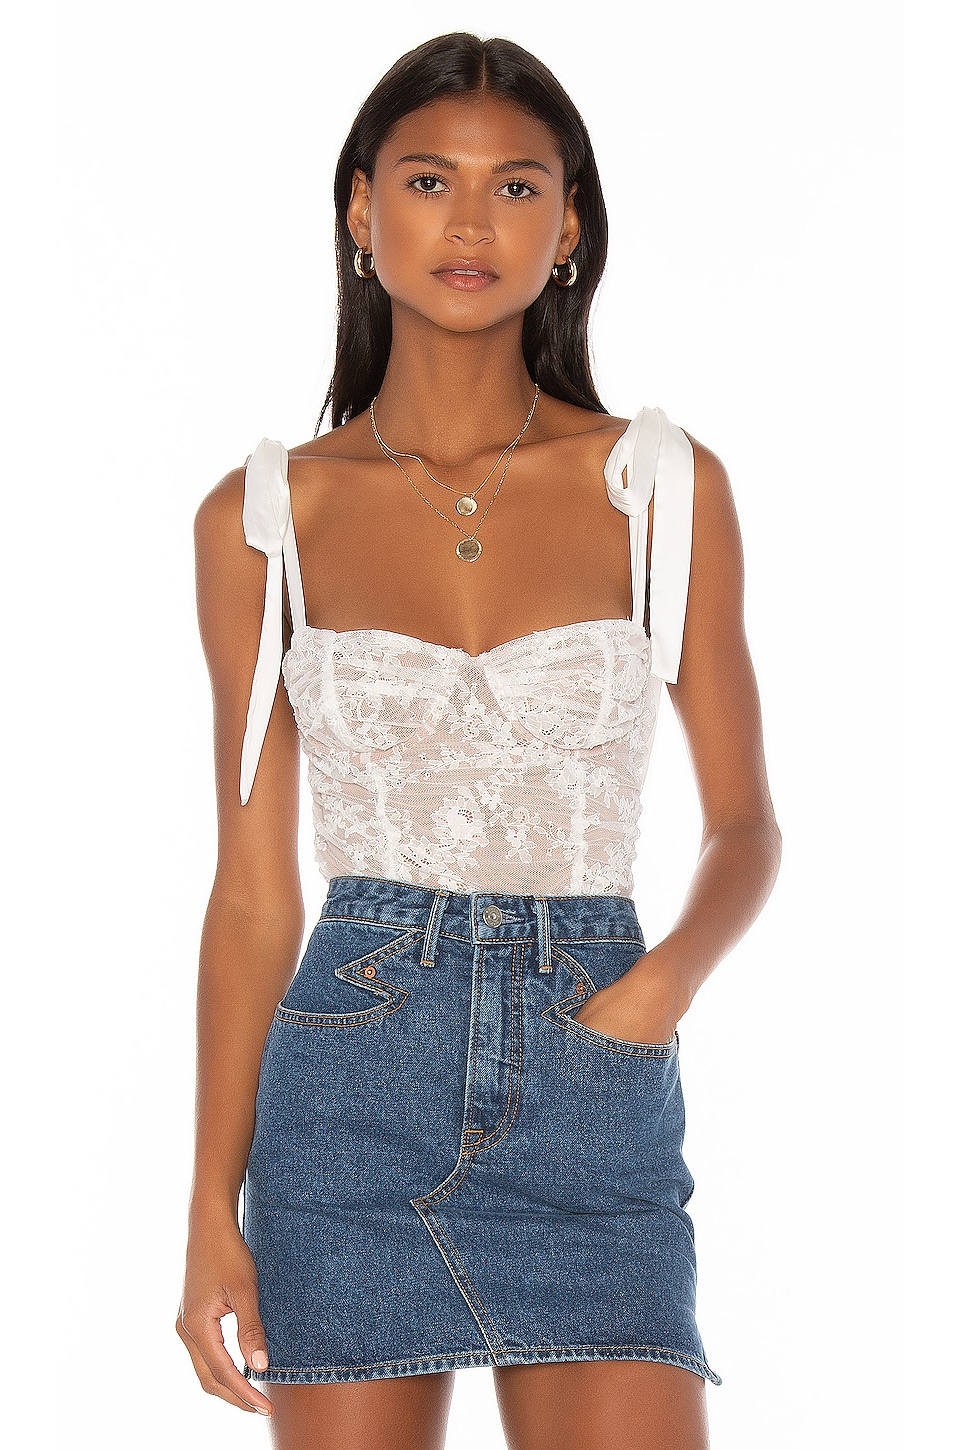 For Love & Lemons Dolly Bustier Top in White Lace